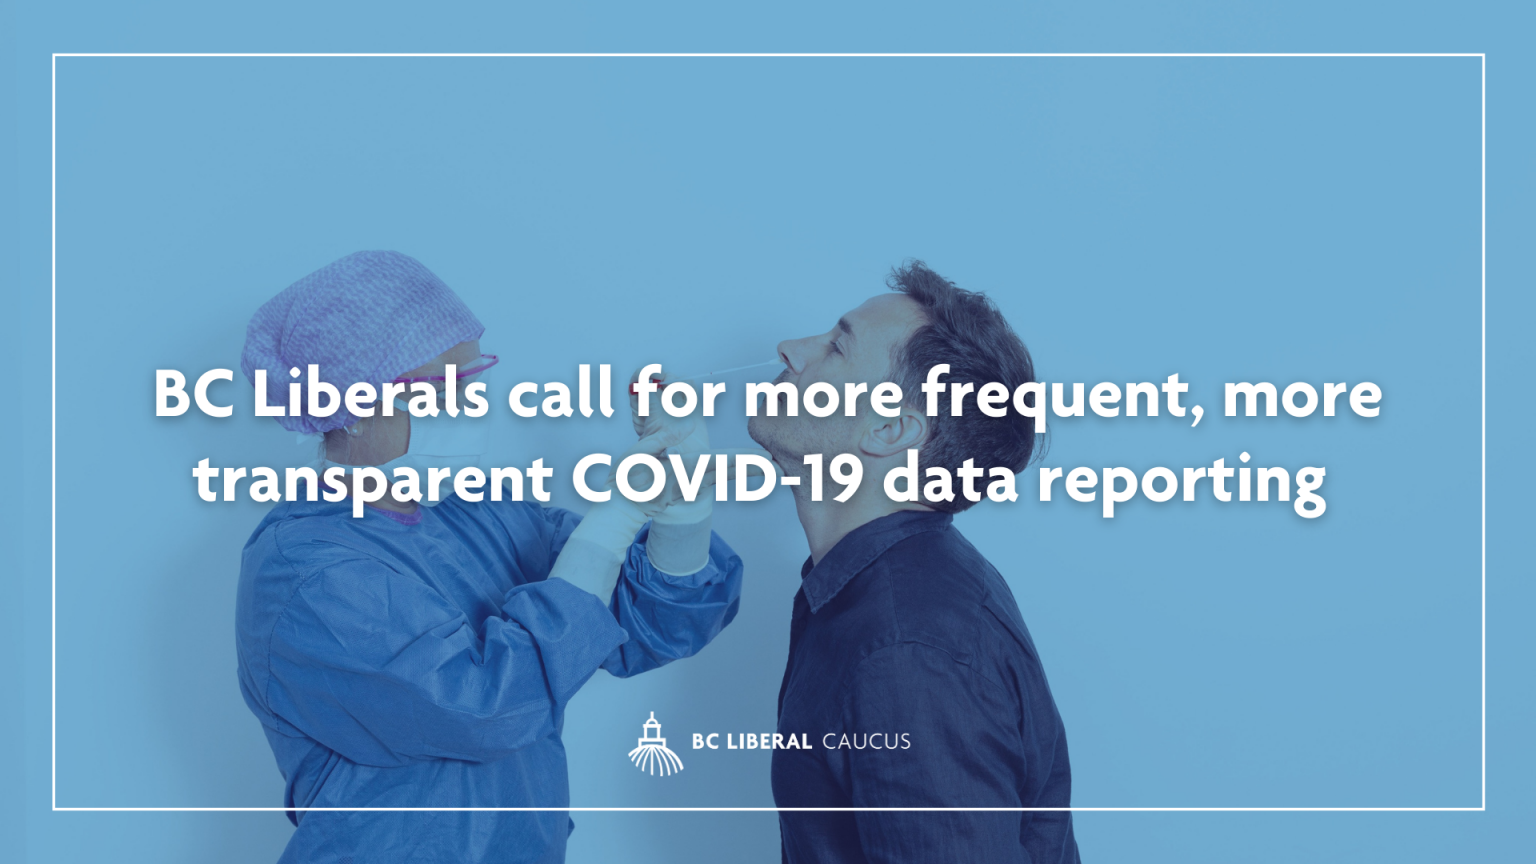 BC Liberals call for more frequent, more transparent COVID-19 data reporting